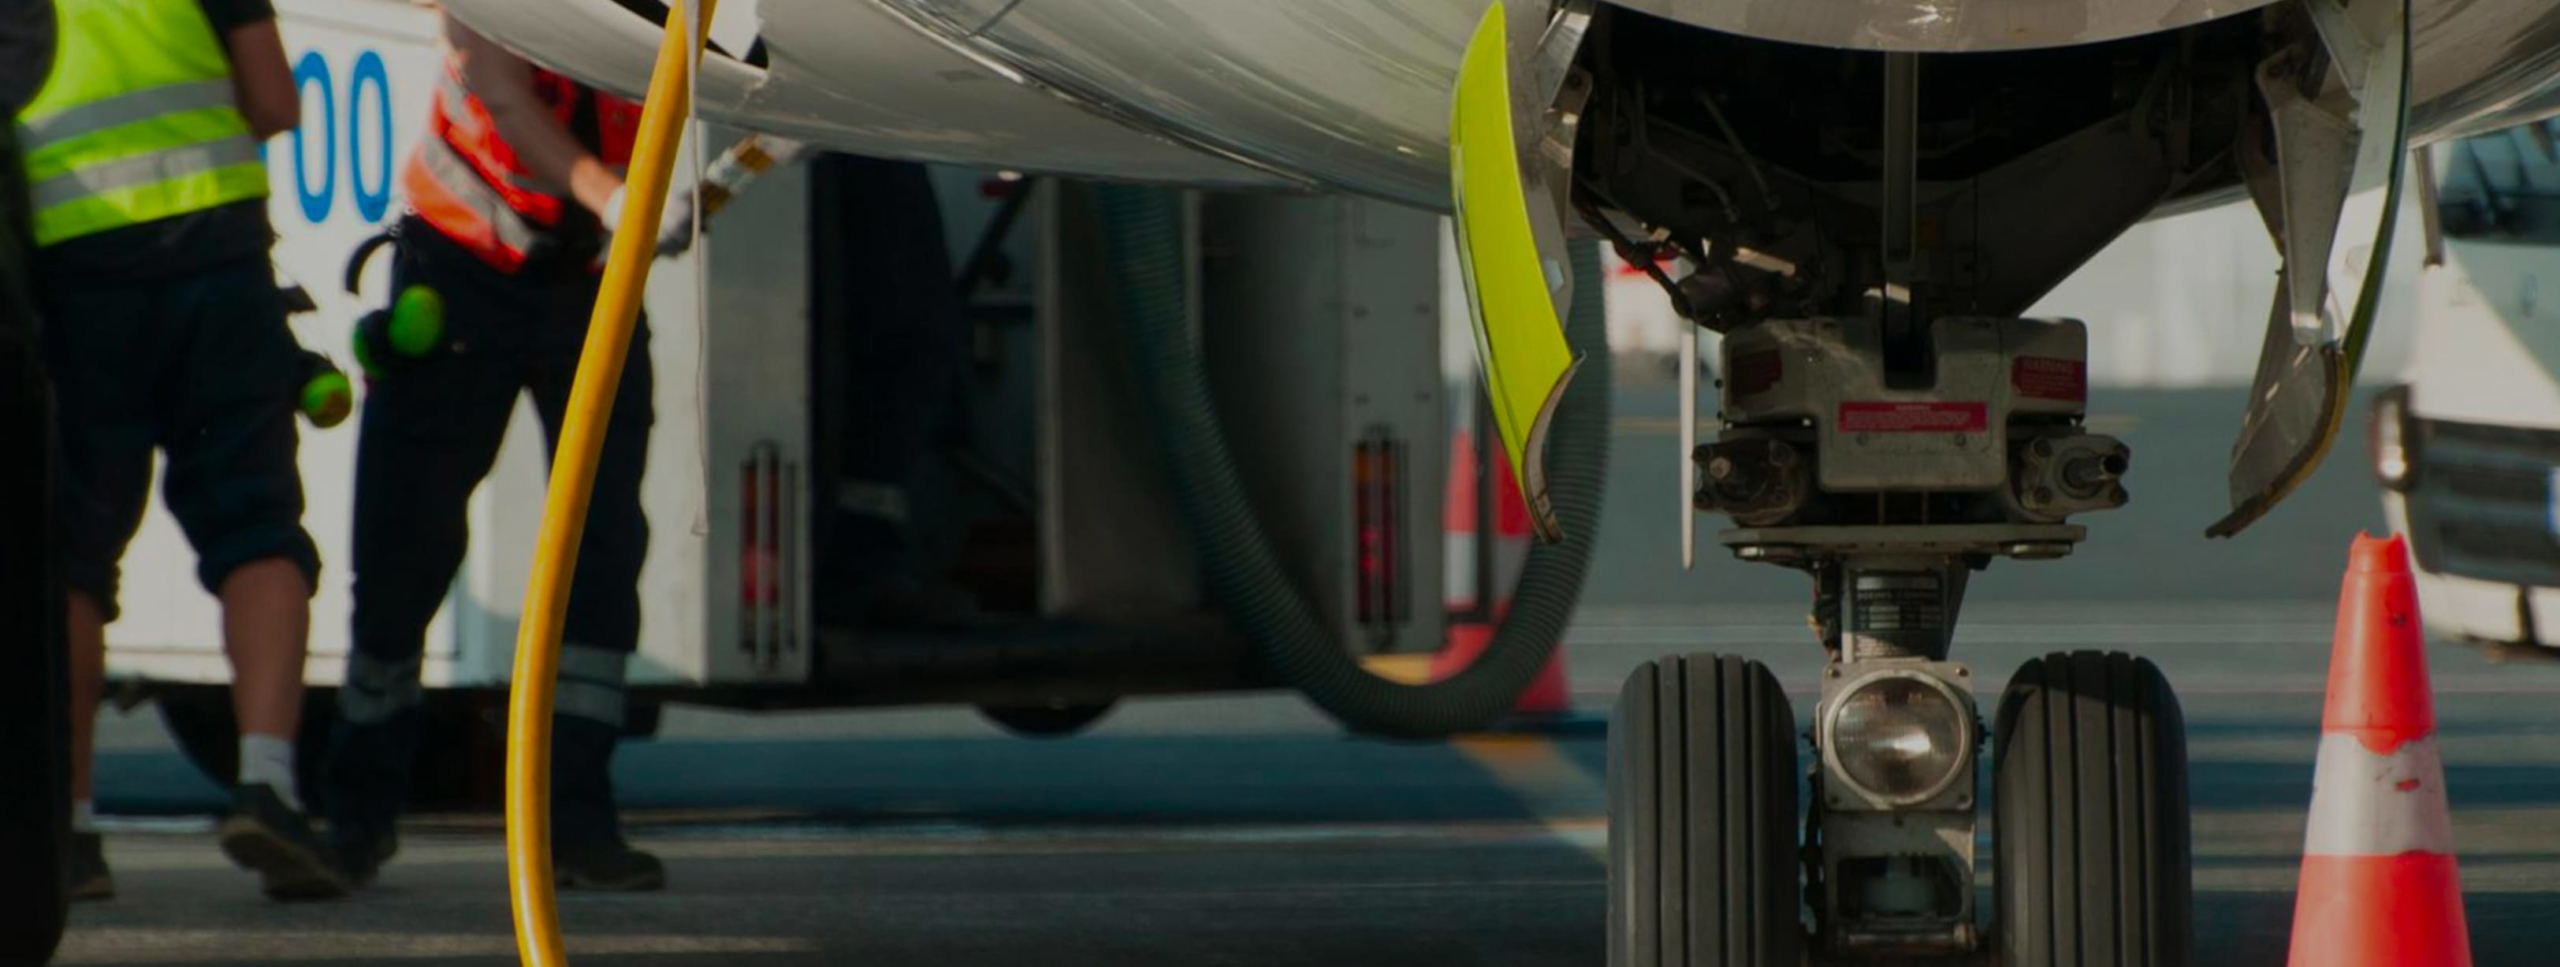 Service avitaillement en carburant - FBO Paris Le Bourget